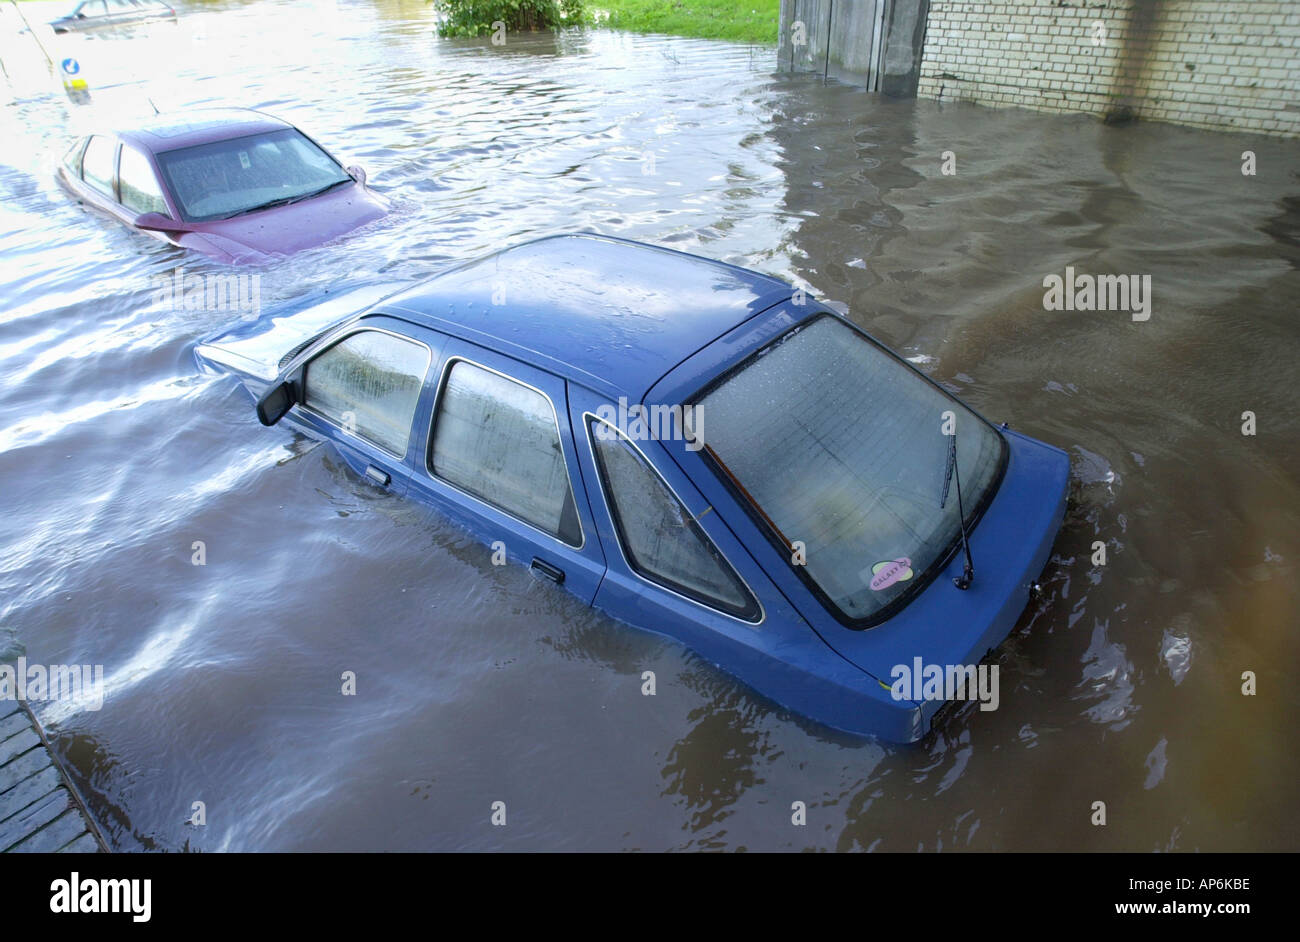 Cars stranded on flooded road after heavy rain in city of Newport South Wales UK - Stock Image